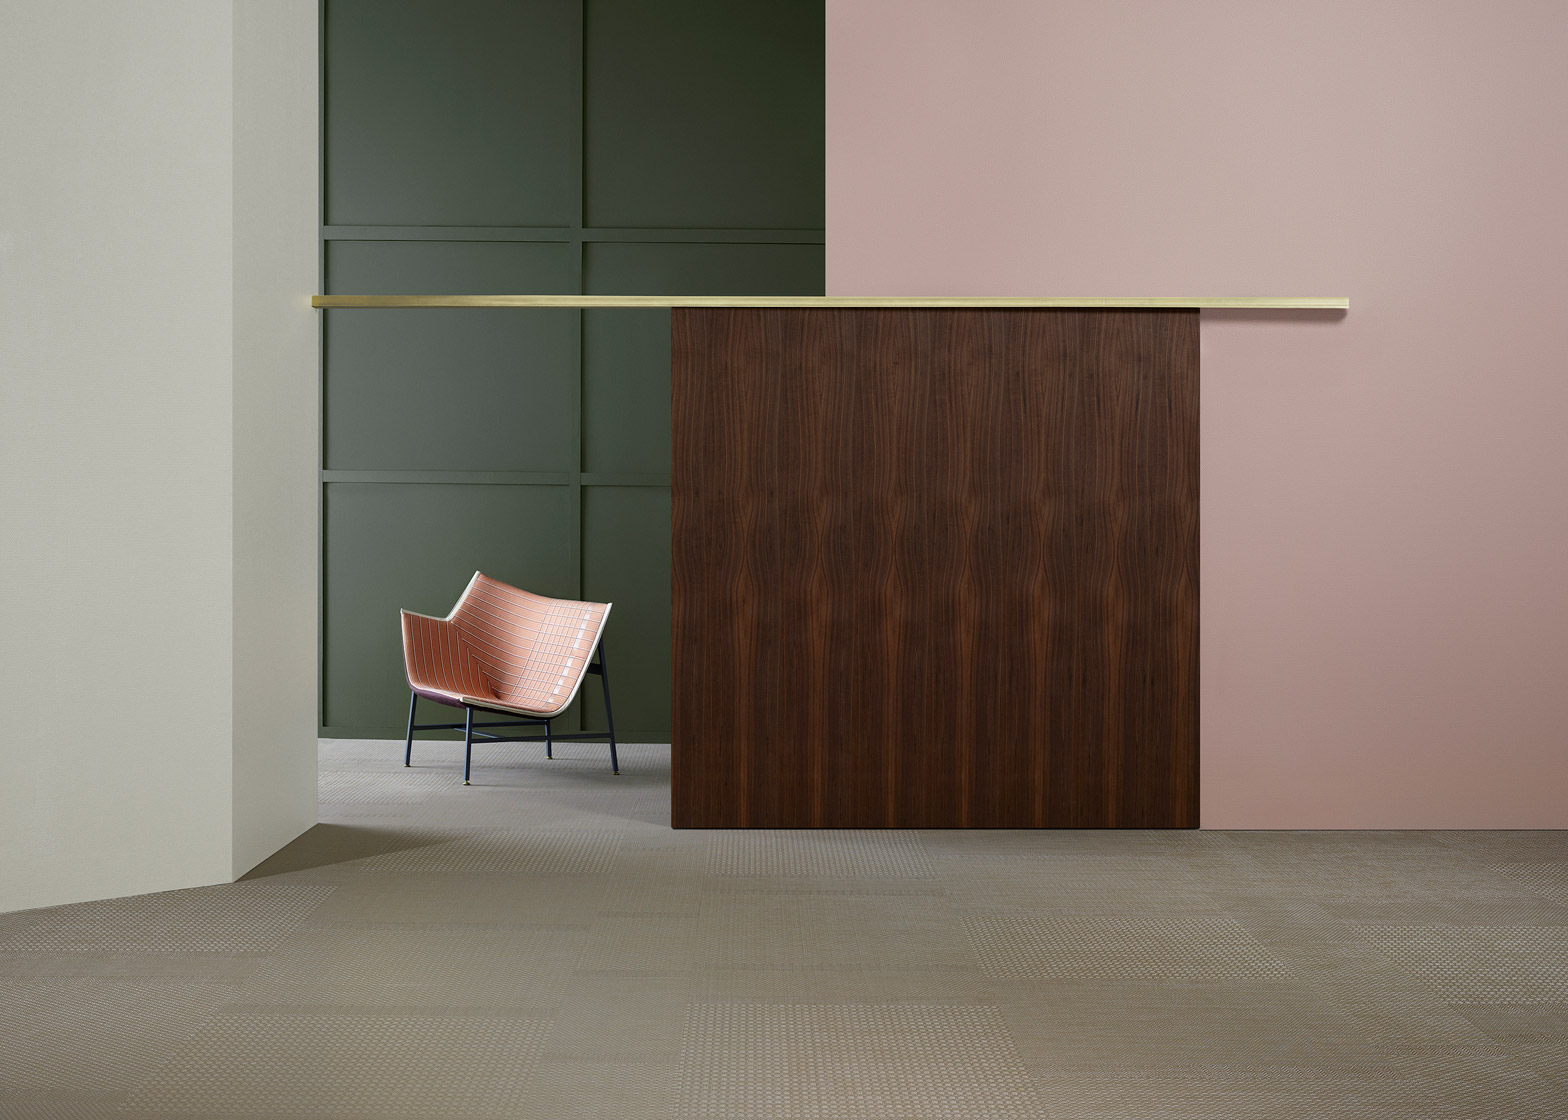 Doshi Levien's visual campaign for Swedish flooring brand Bolon